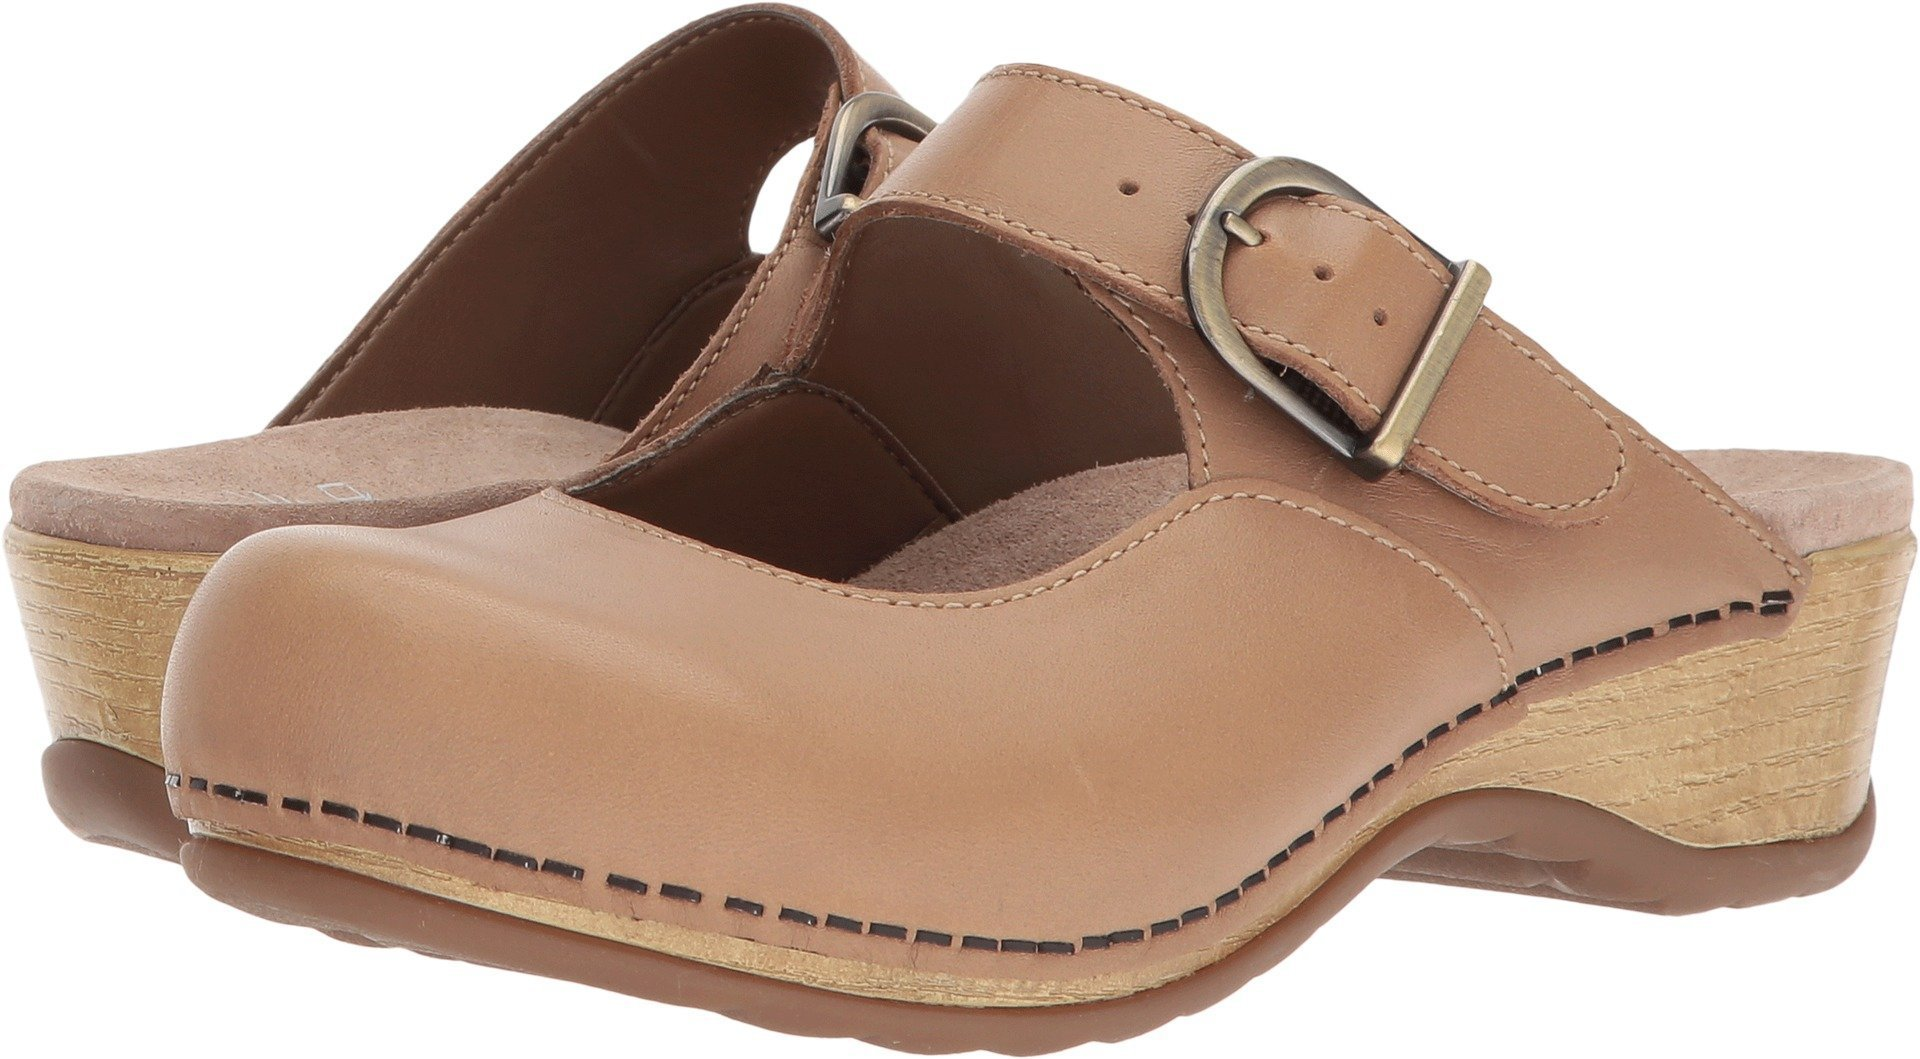 Dansko Women's Martina Mule, Sand Full Grain, 38 M EU (7.5-8 US)